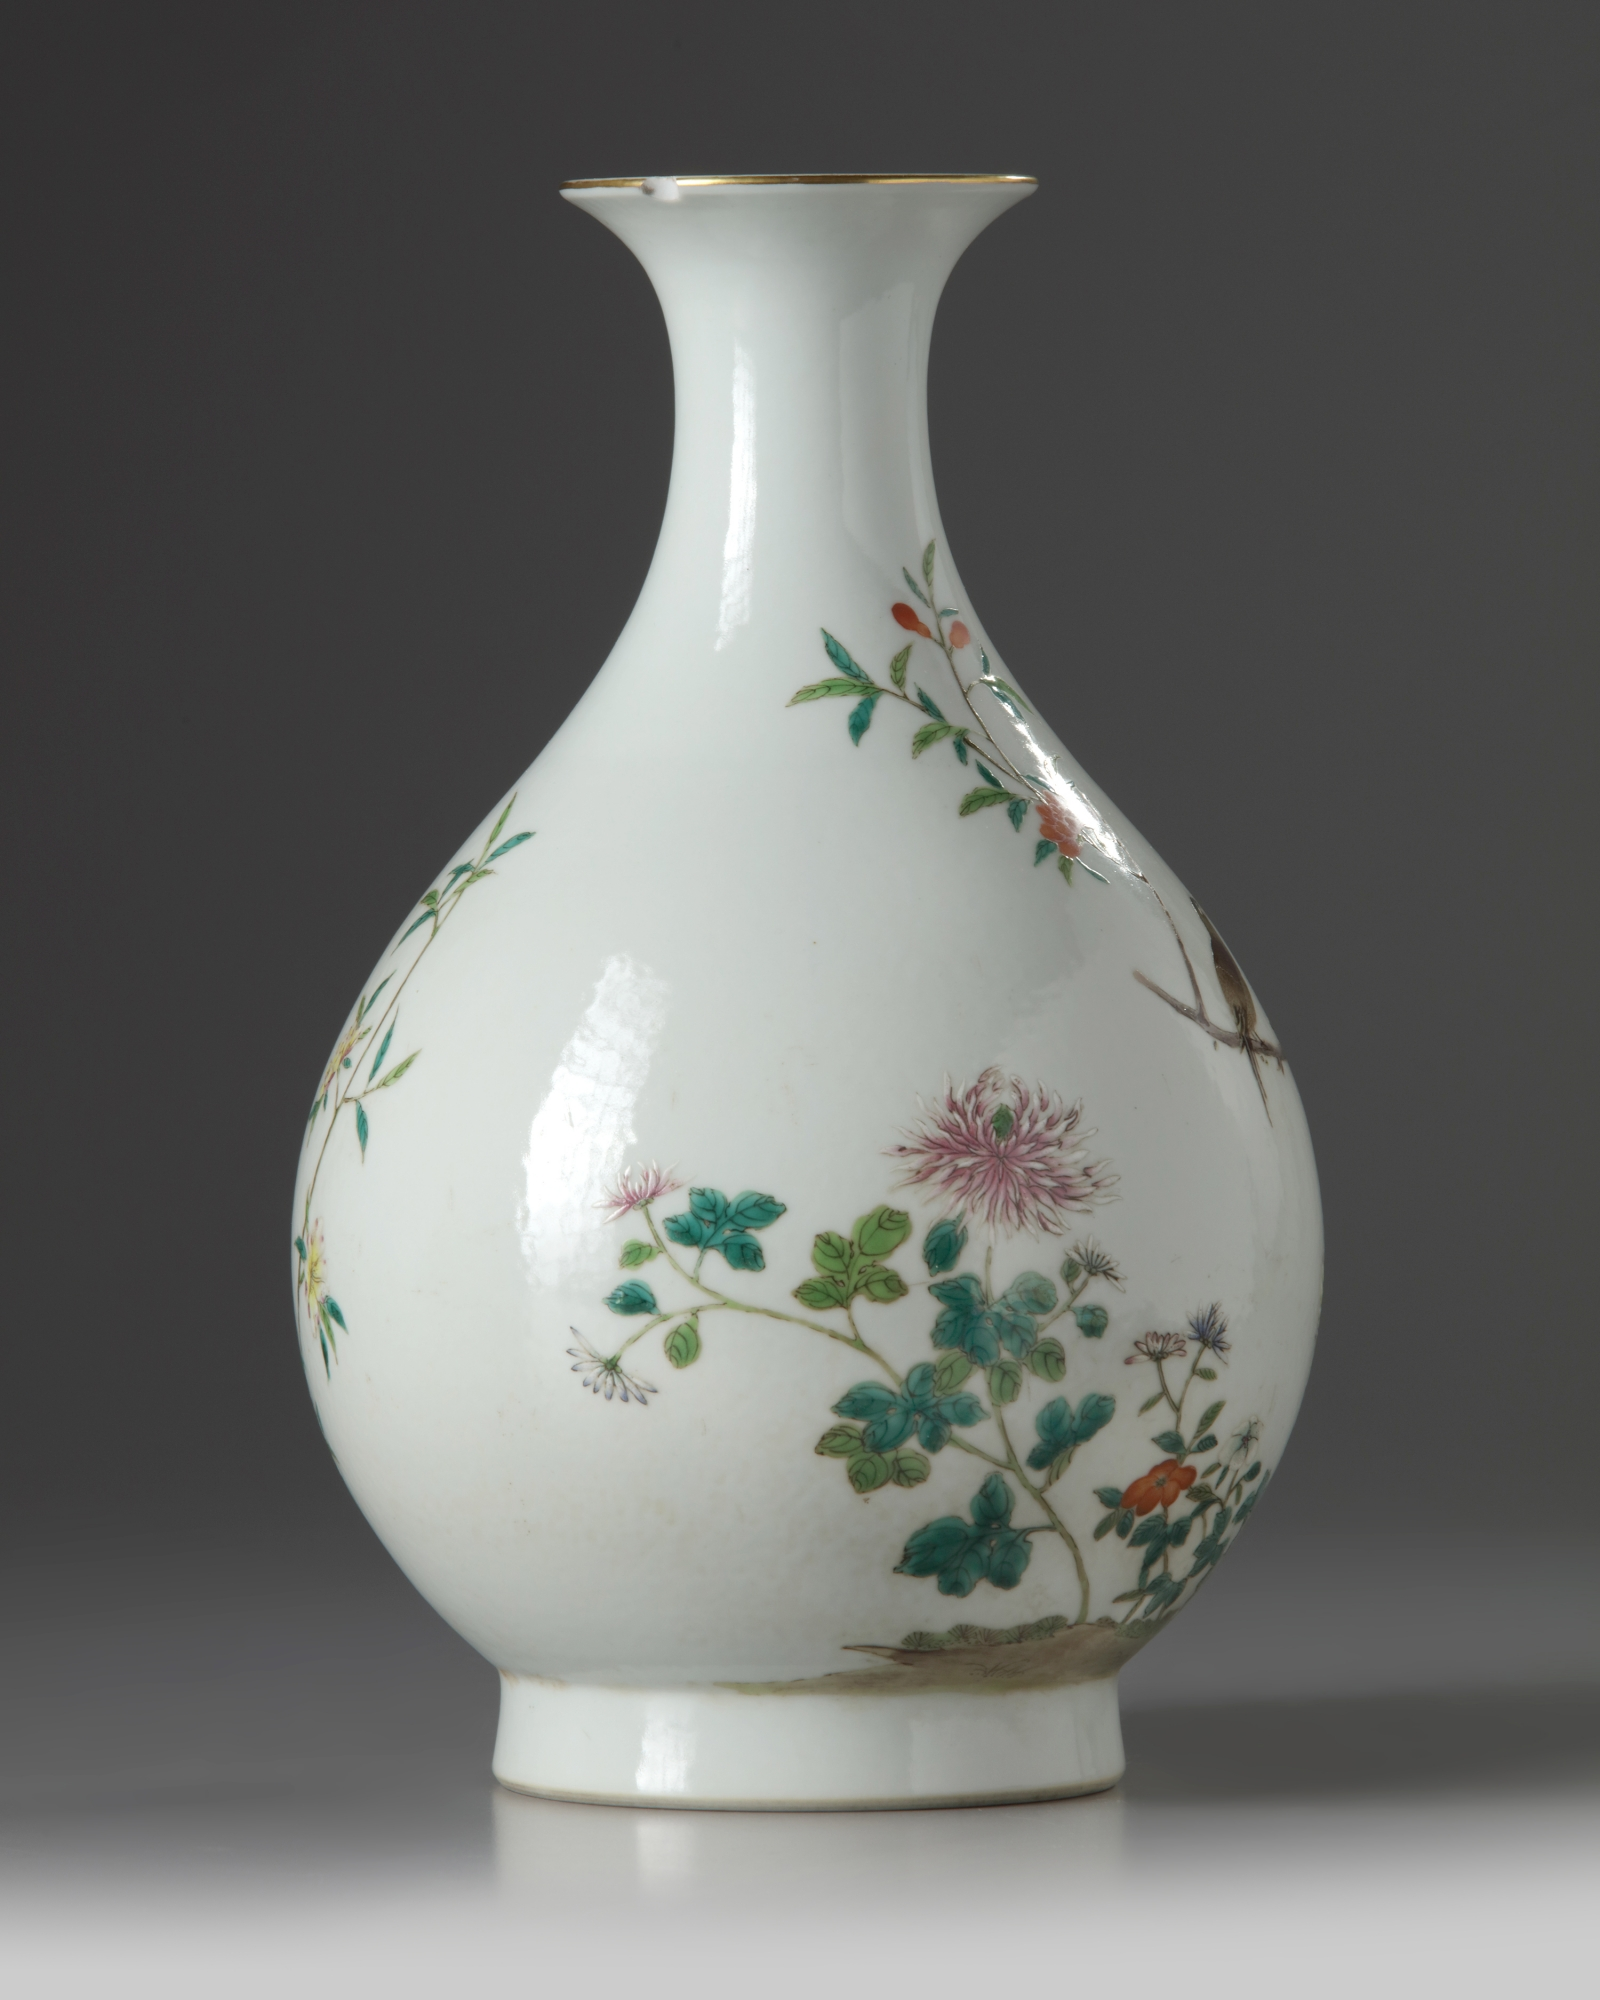 Lot 46 - A Chinese famille rose 'birds and flowers' pear-shaped vase, yuhuchunping